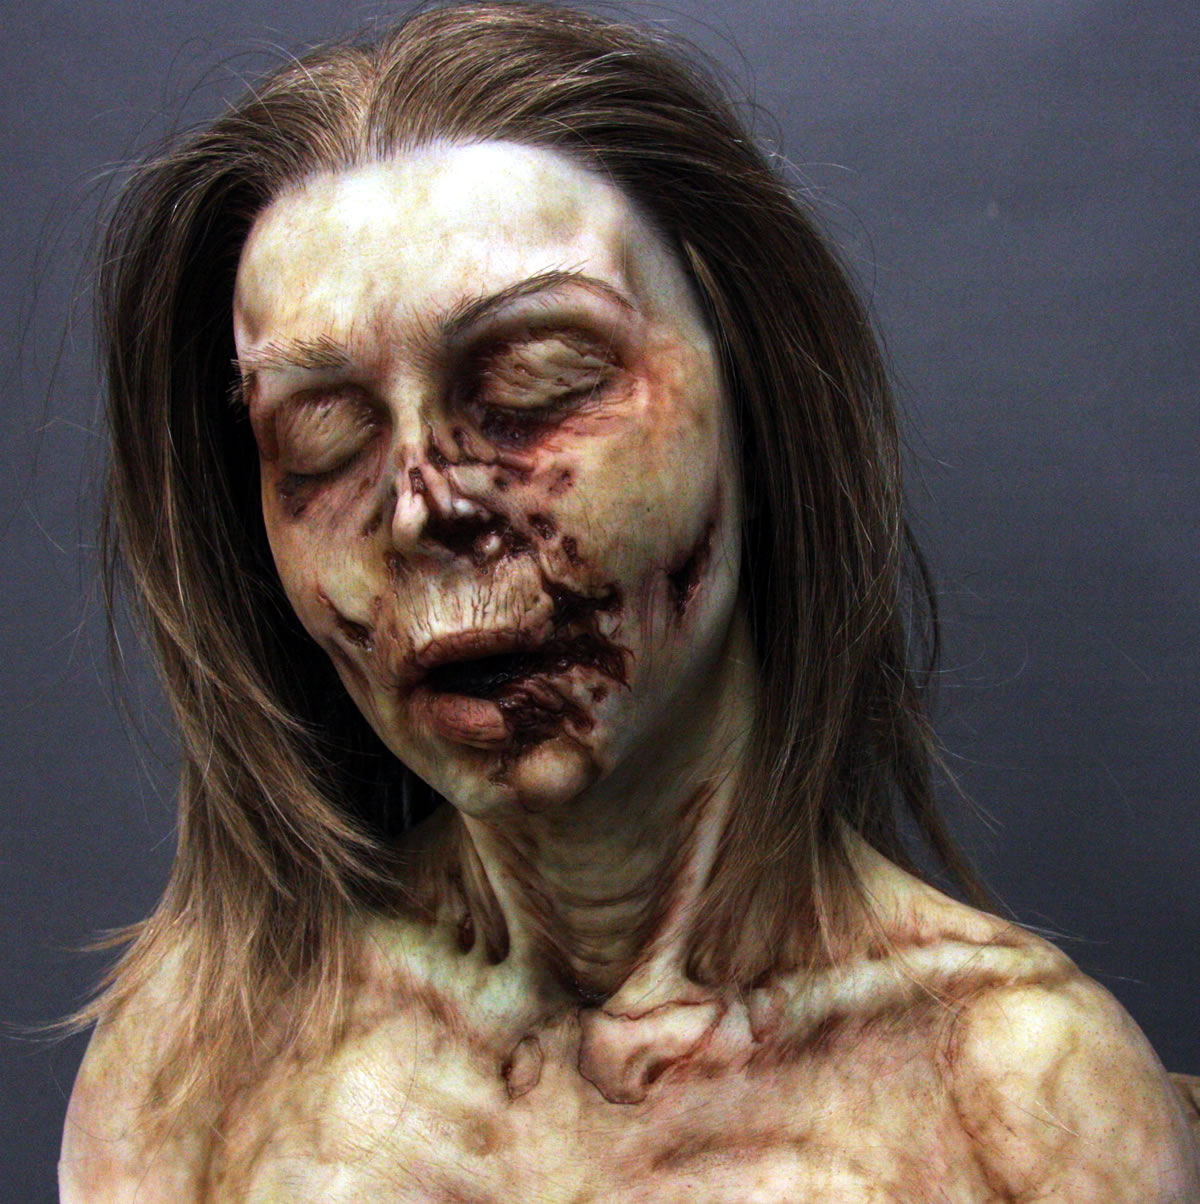 Female Corpse from 'Law and Order - Los Angeles'